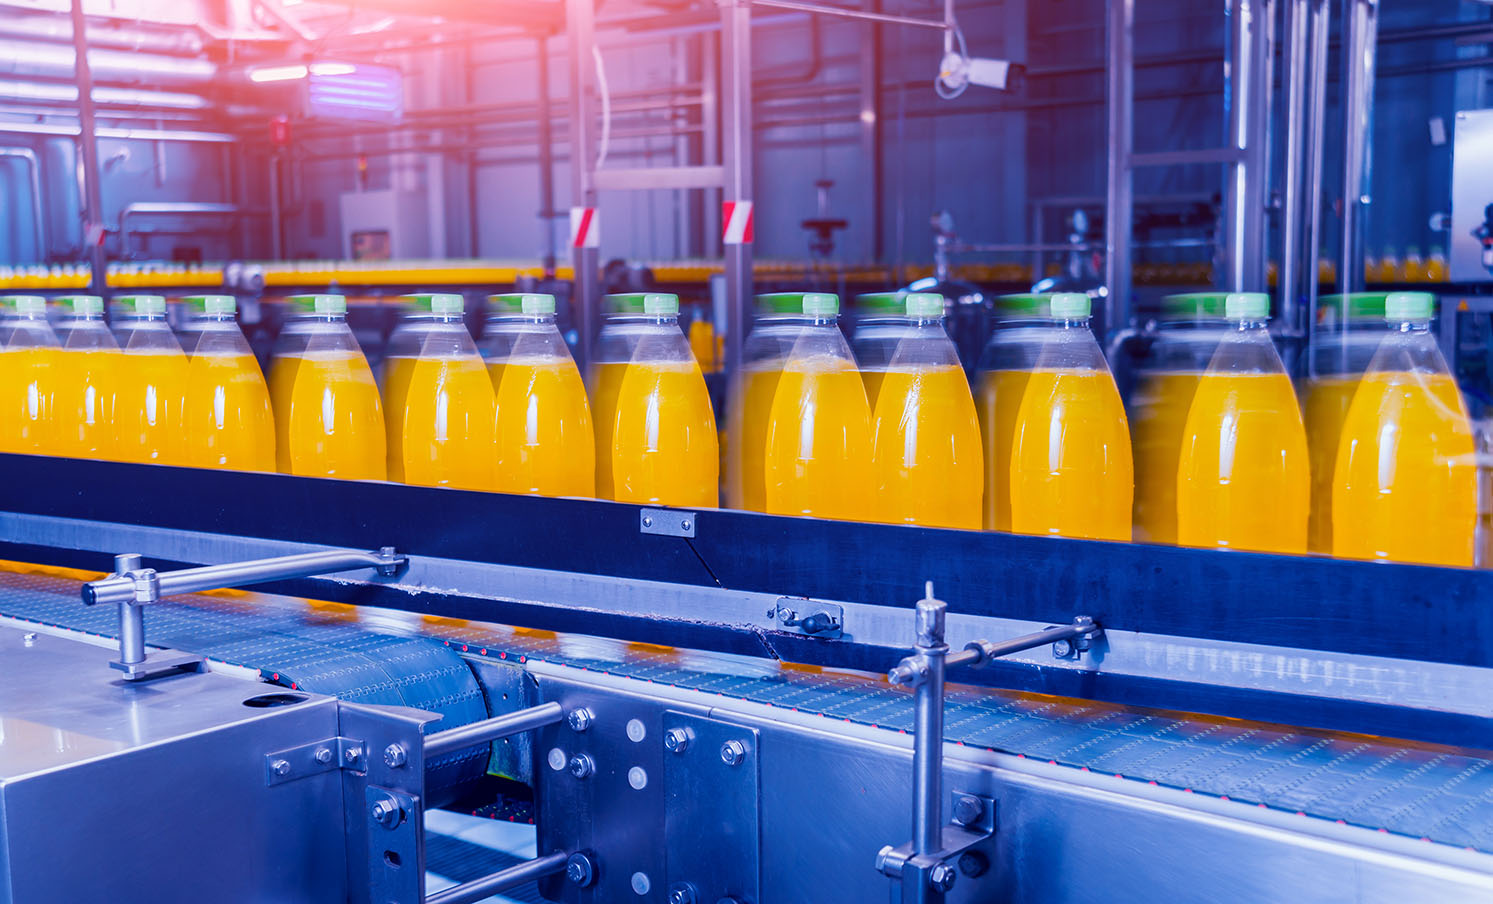 Beverage Manufacturing Industry Coding and Marking